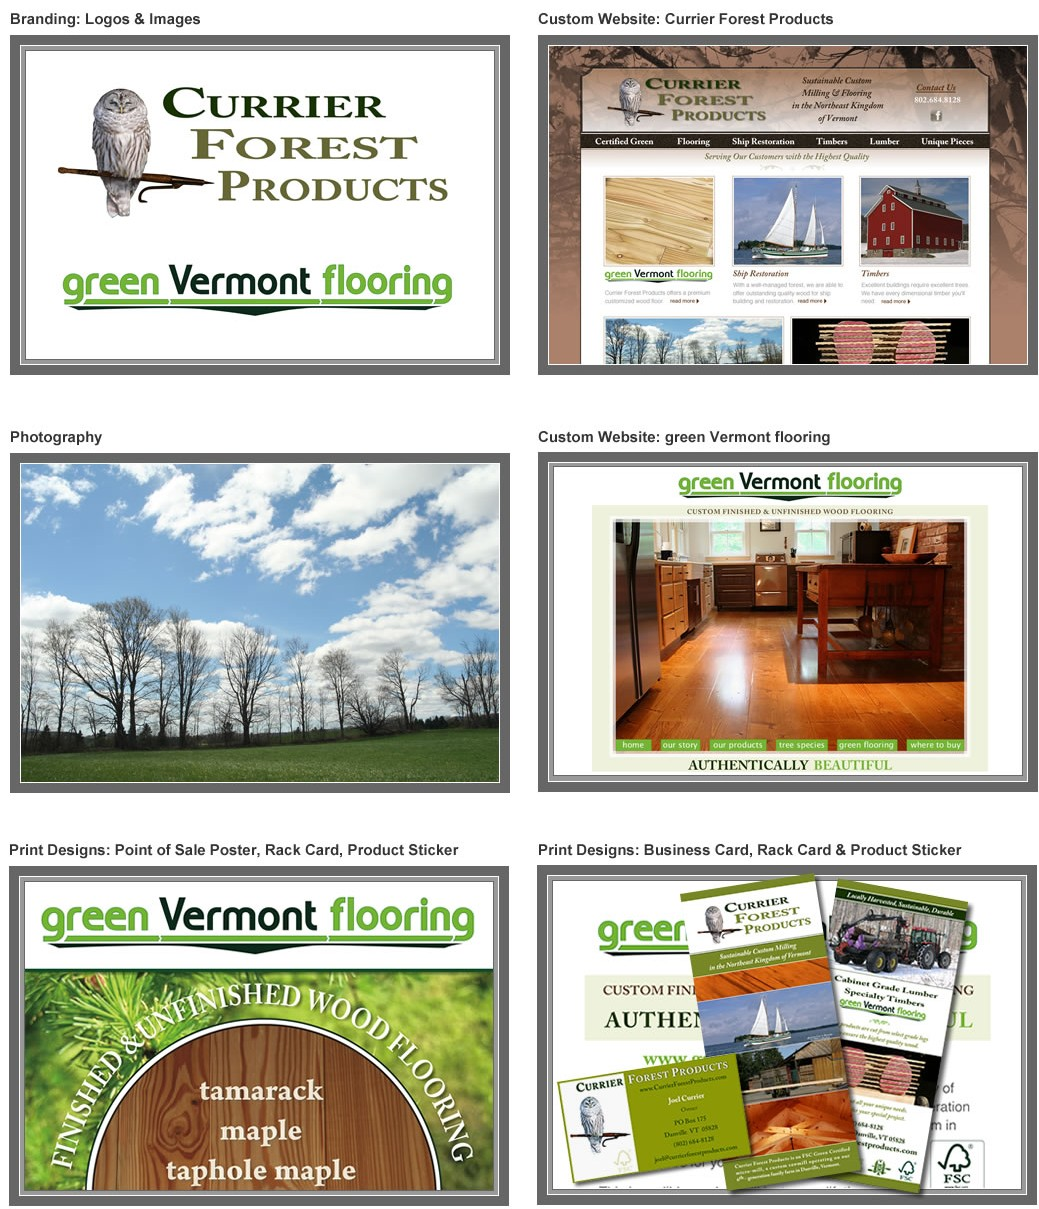 Currier Forest Products & Green Vermont Flooring